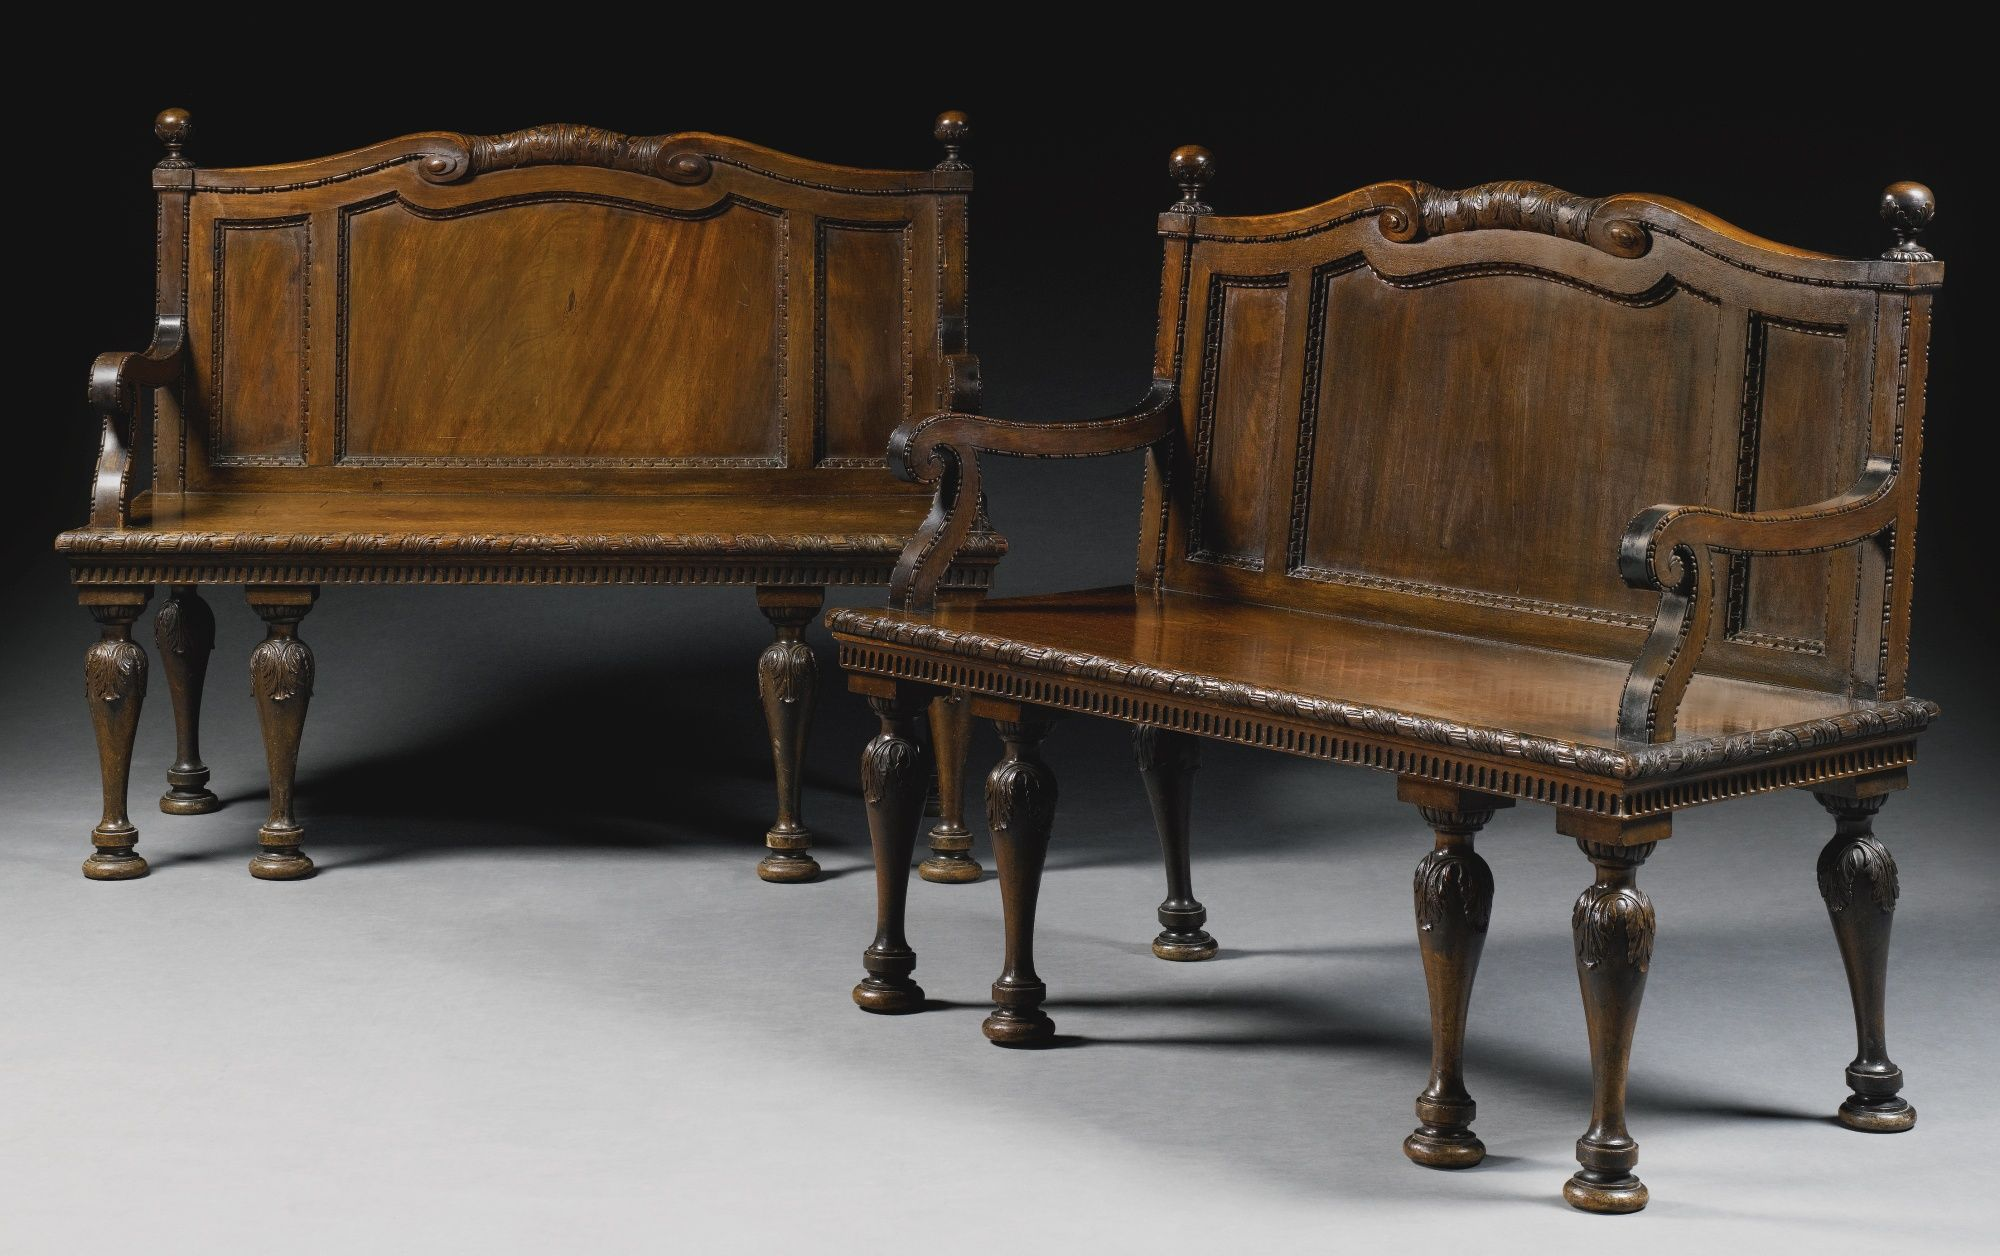 A pair of Early George III Mahogany Hall Benches circa 1760, Attributed to William and John Linnell | Lot | Sotheby's